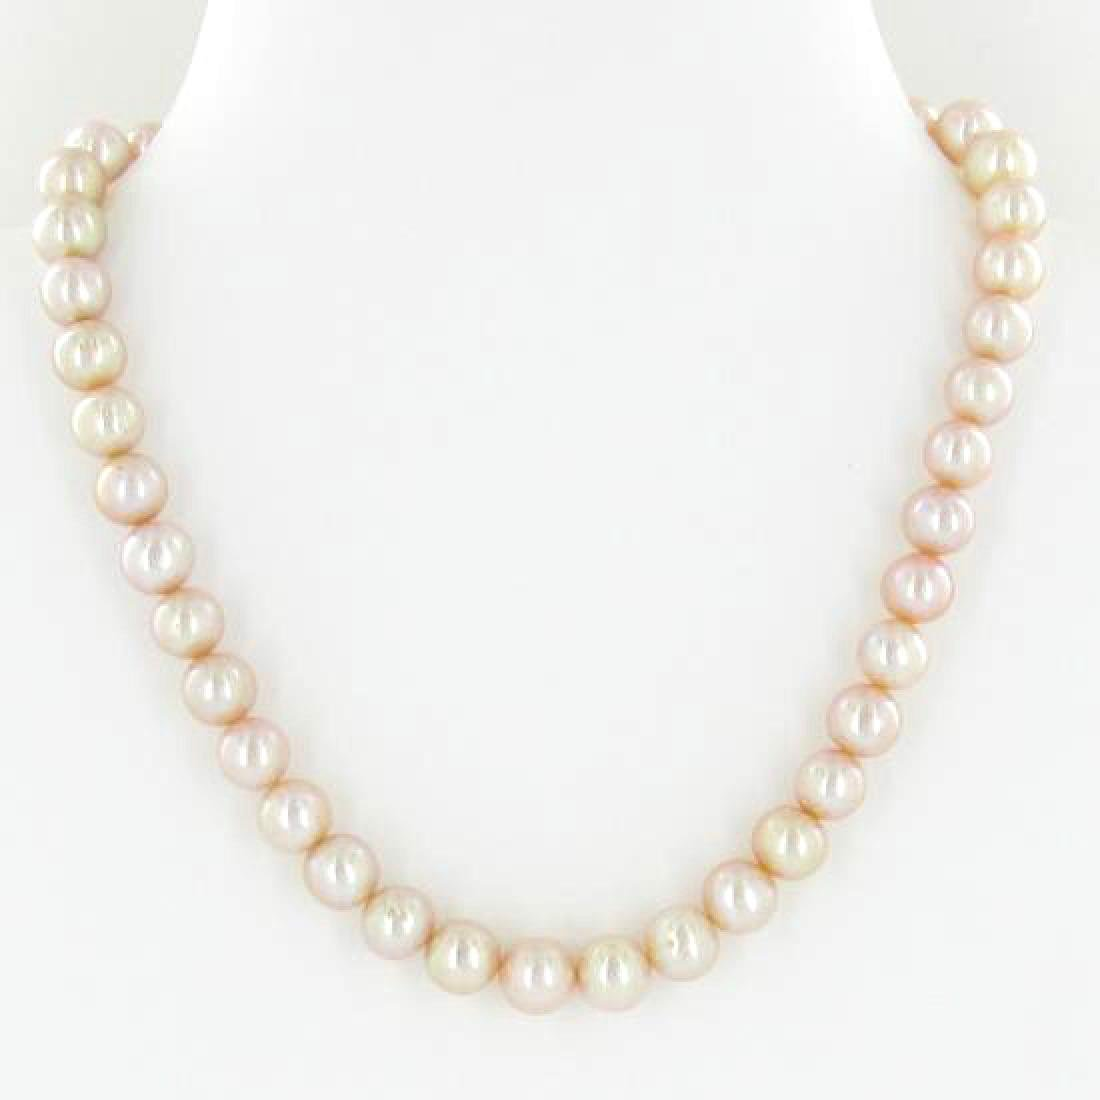 Scarce Peach Saltwater Pearl Necklace